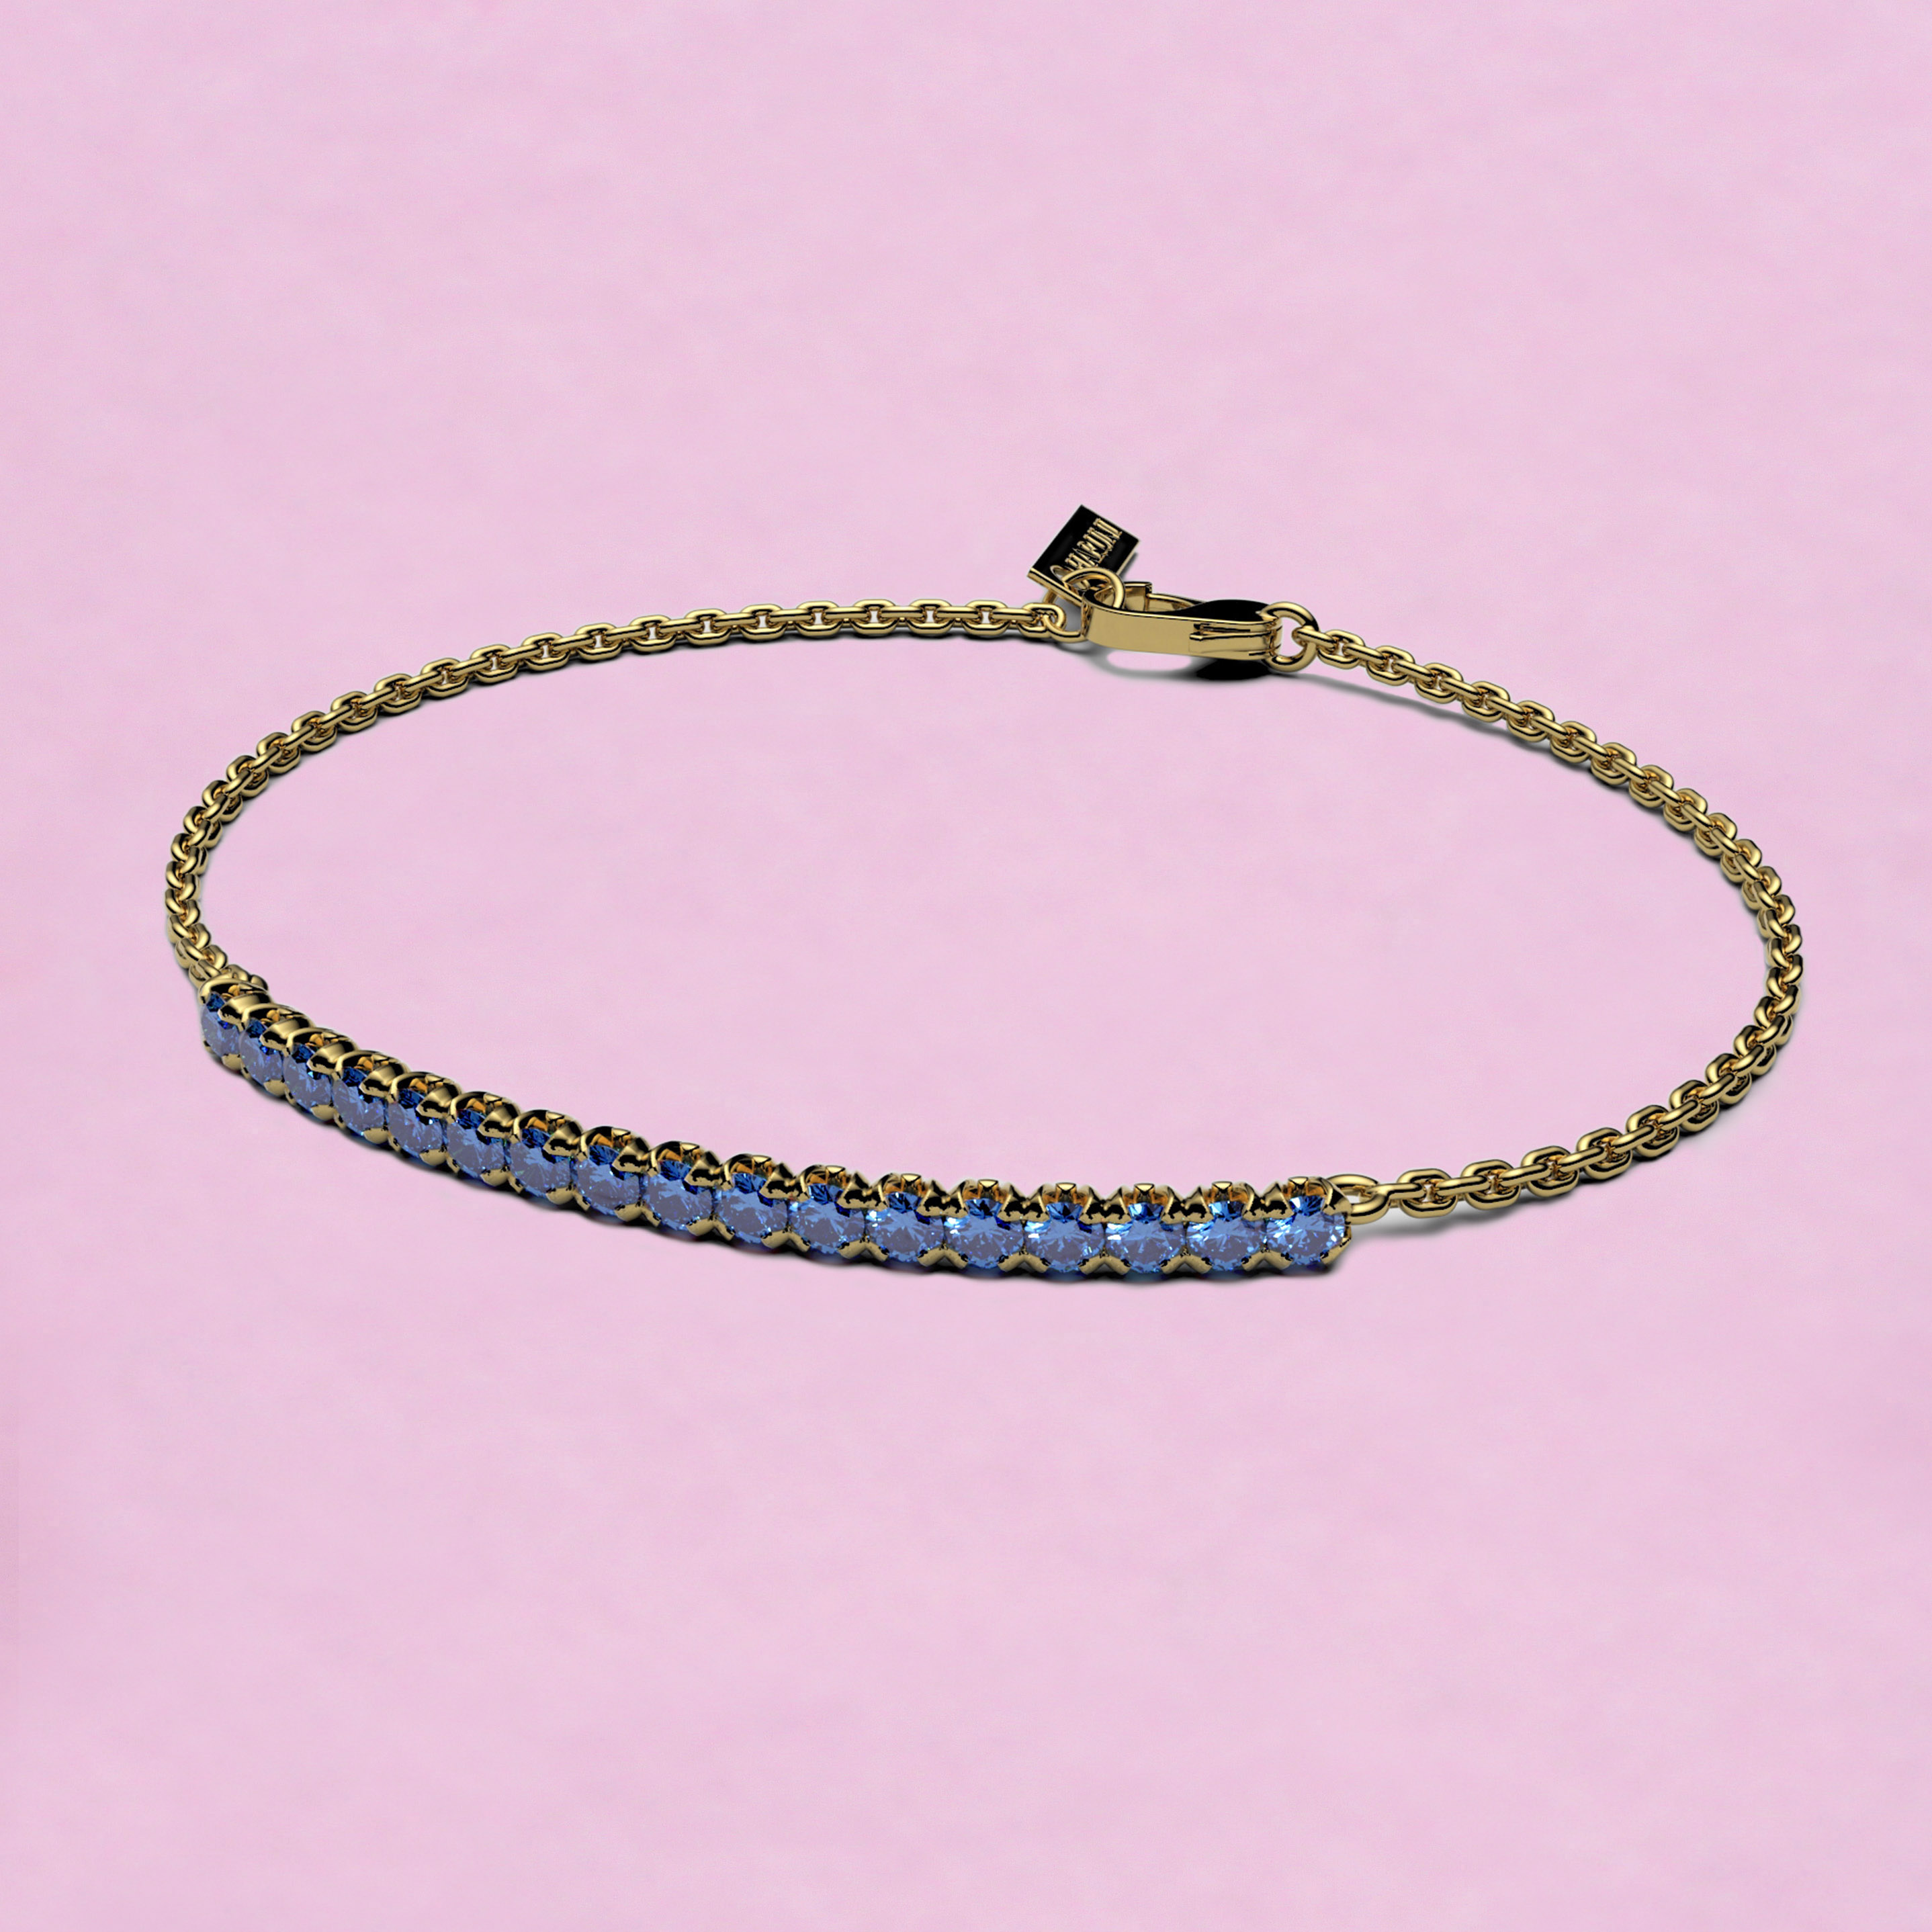 blossom bracelet – cornflower blue sapphire and 18k yellow gold